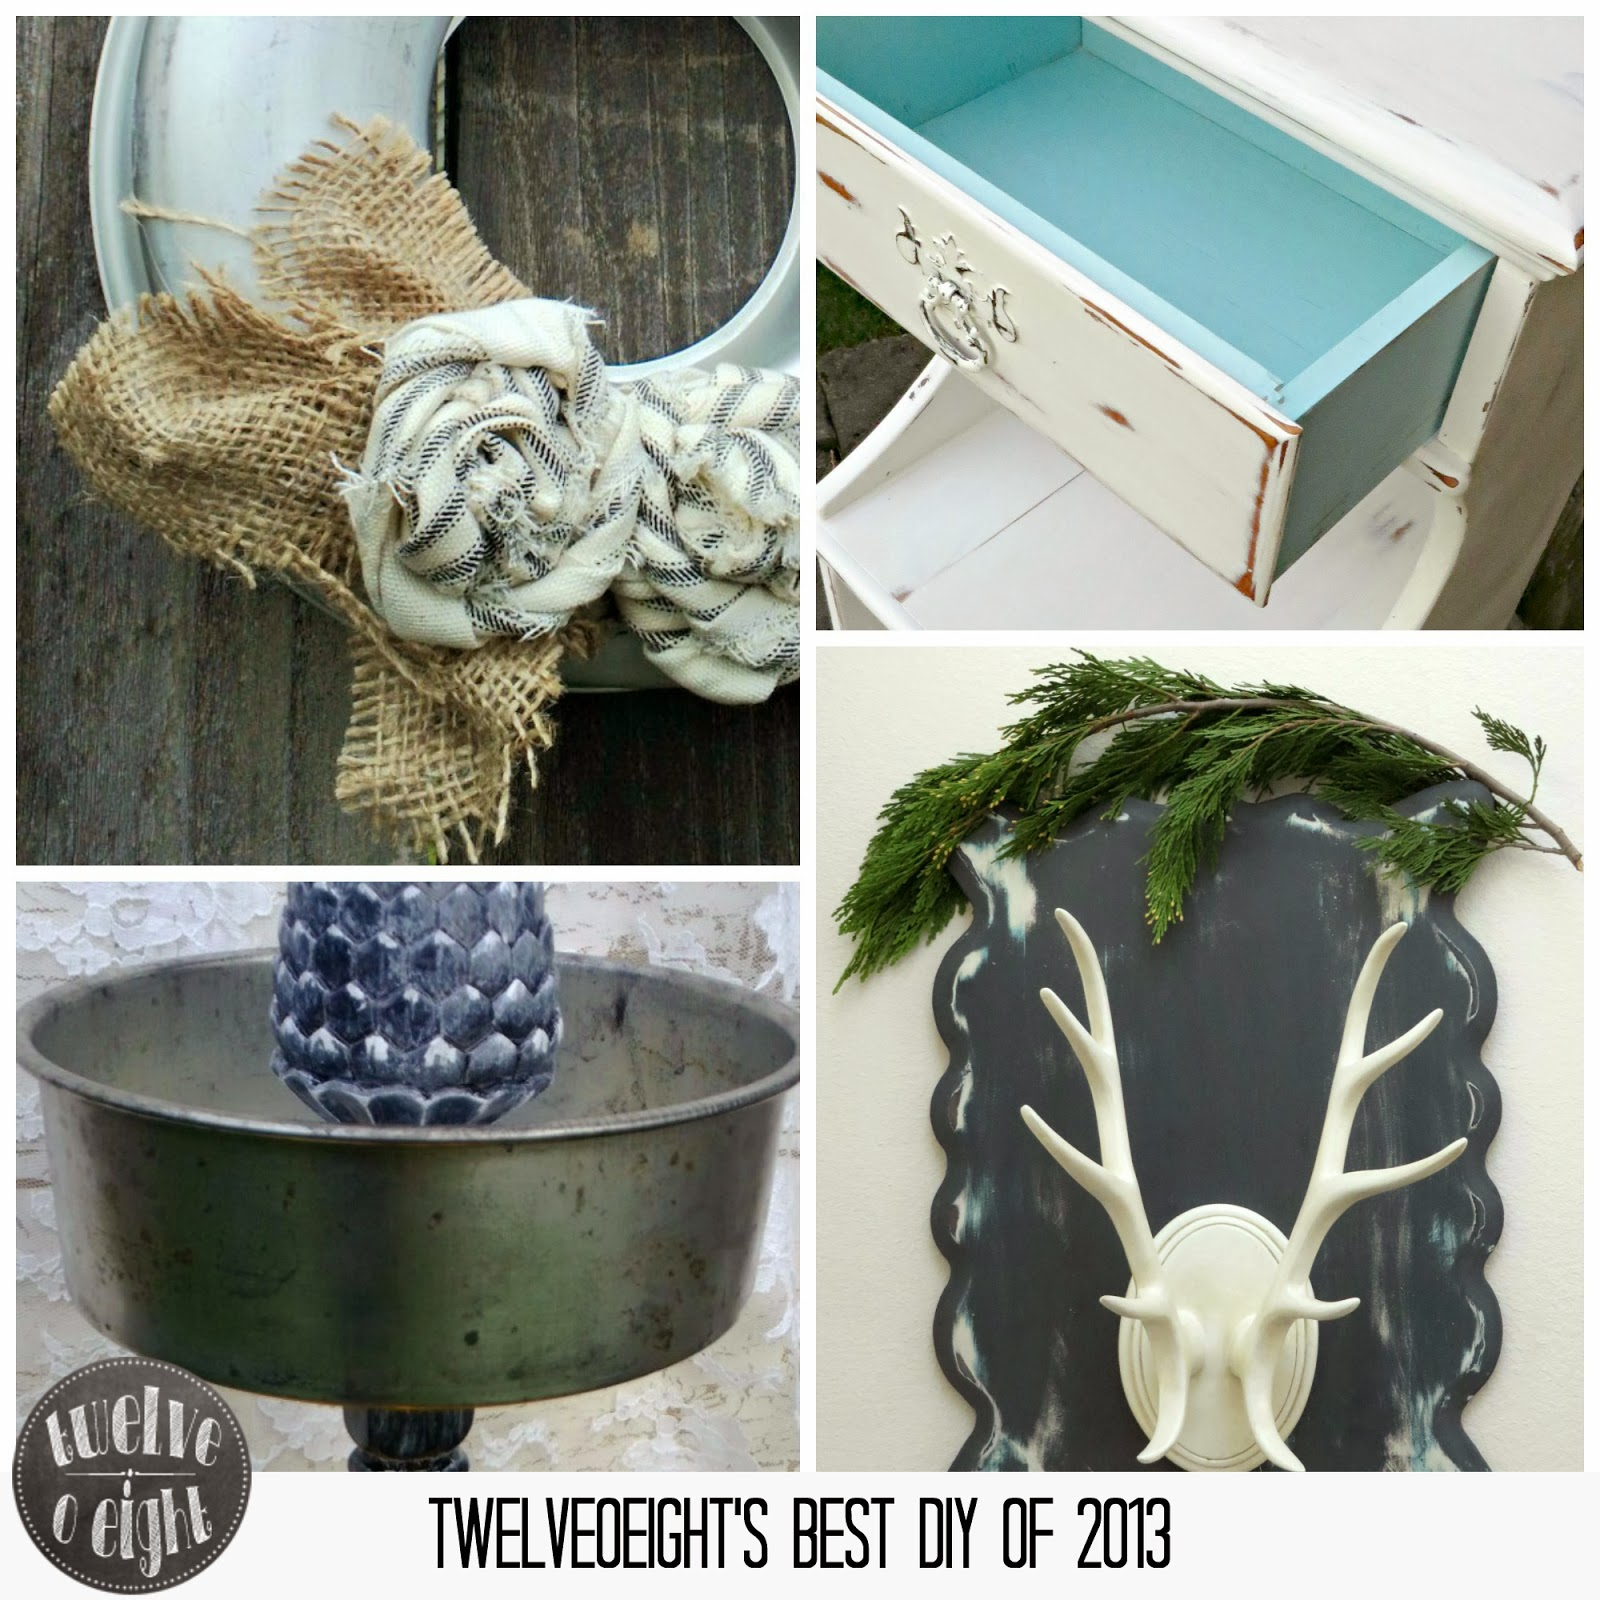 Twelveoeights best diy projects of 2013 solutioingenieria Image collections